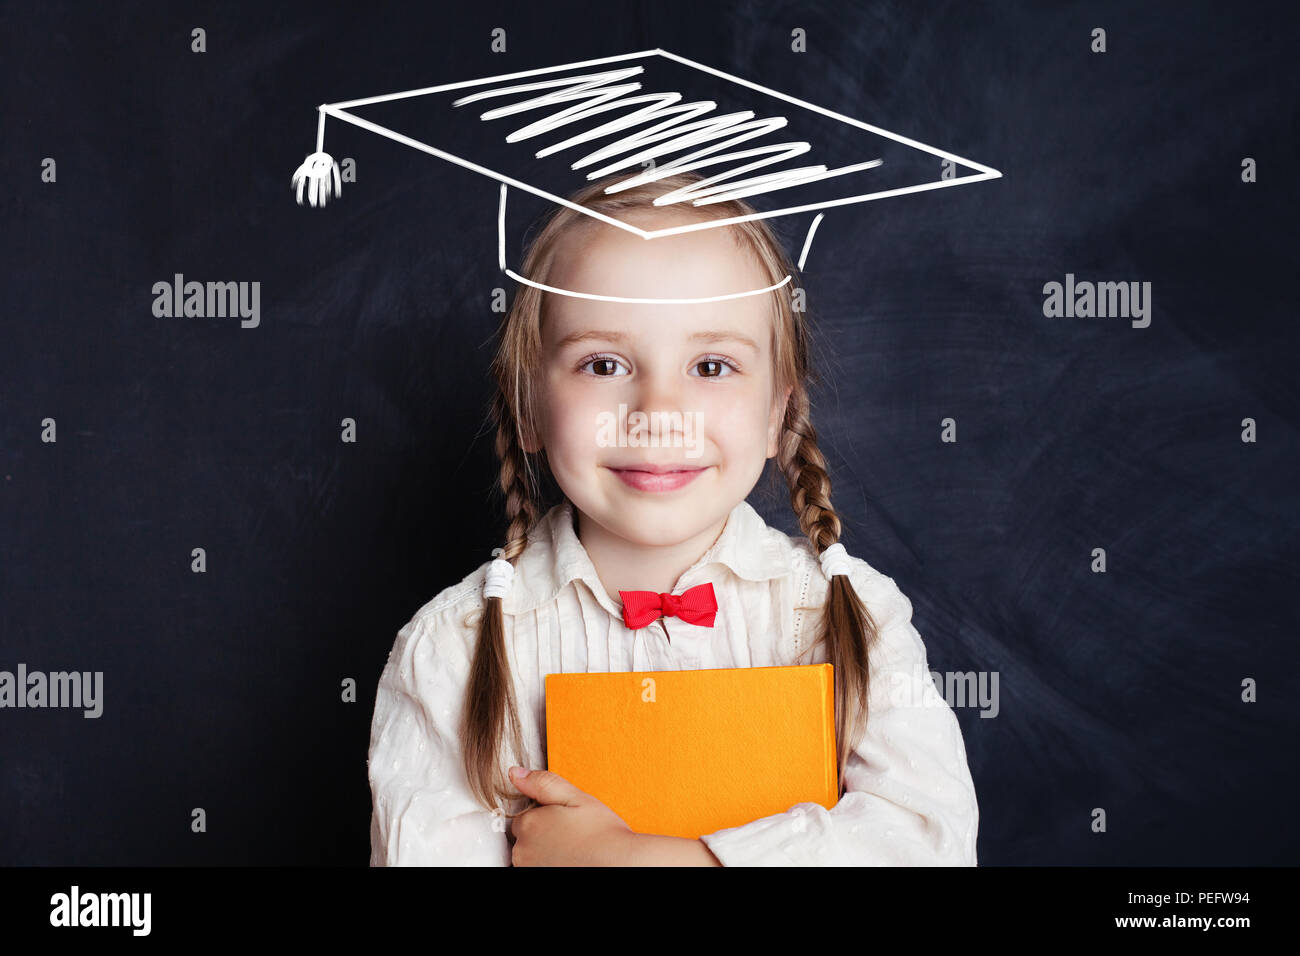 School Child With Education Book And Graduation Hat On Blackboard Banner Background Stock Photo Alamy